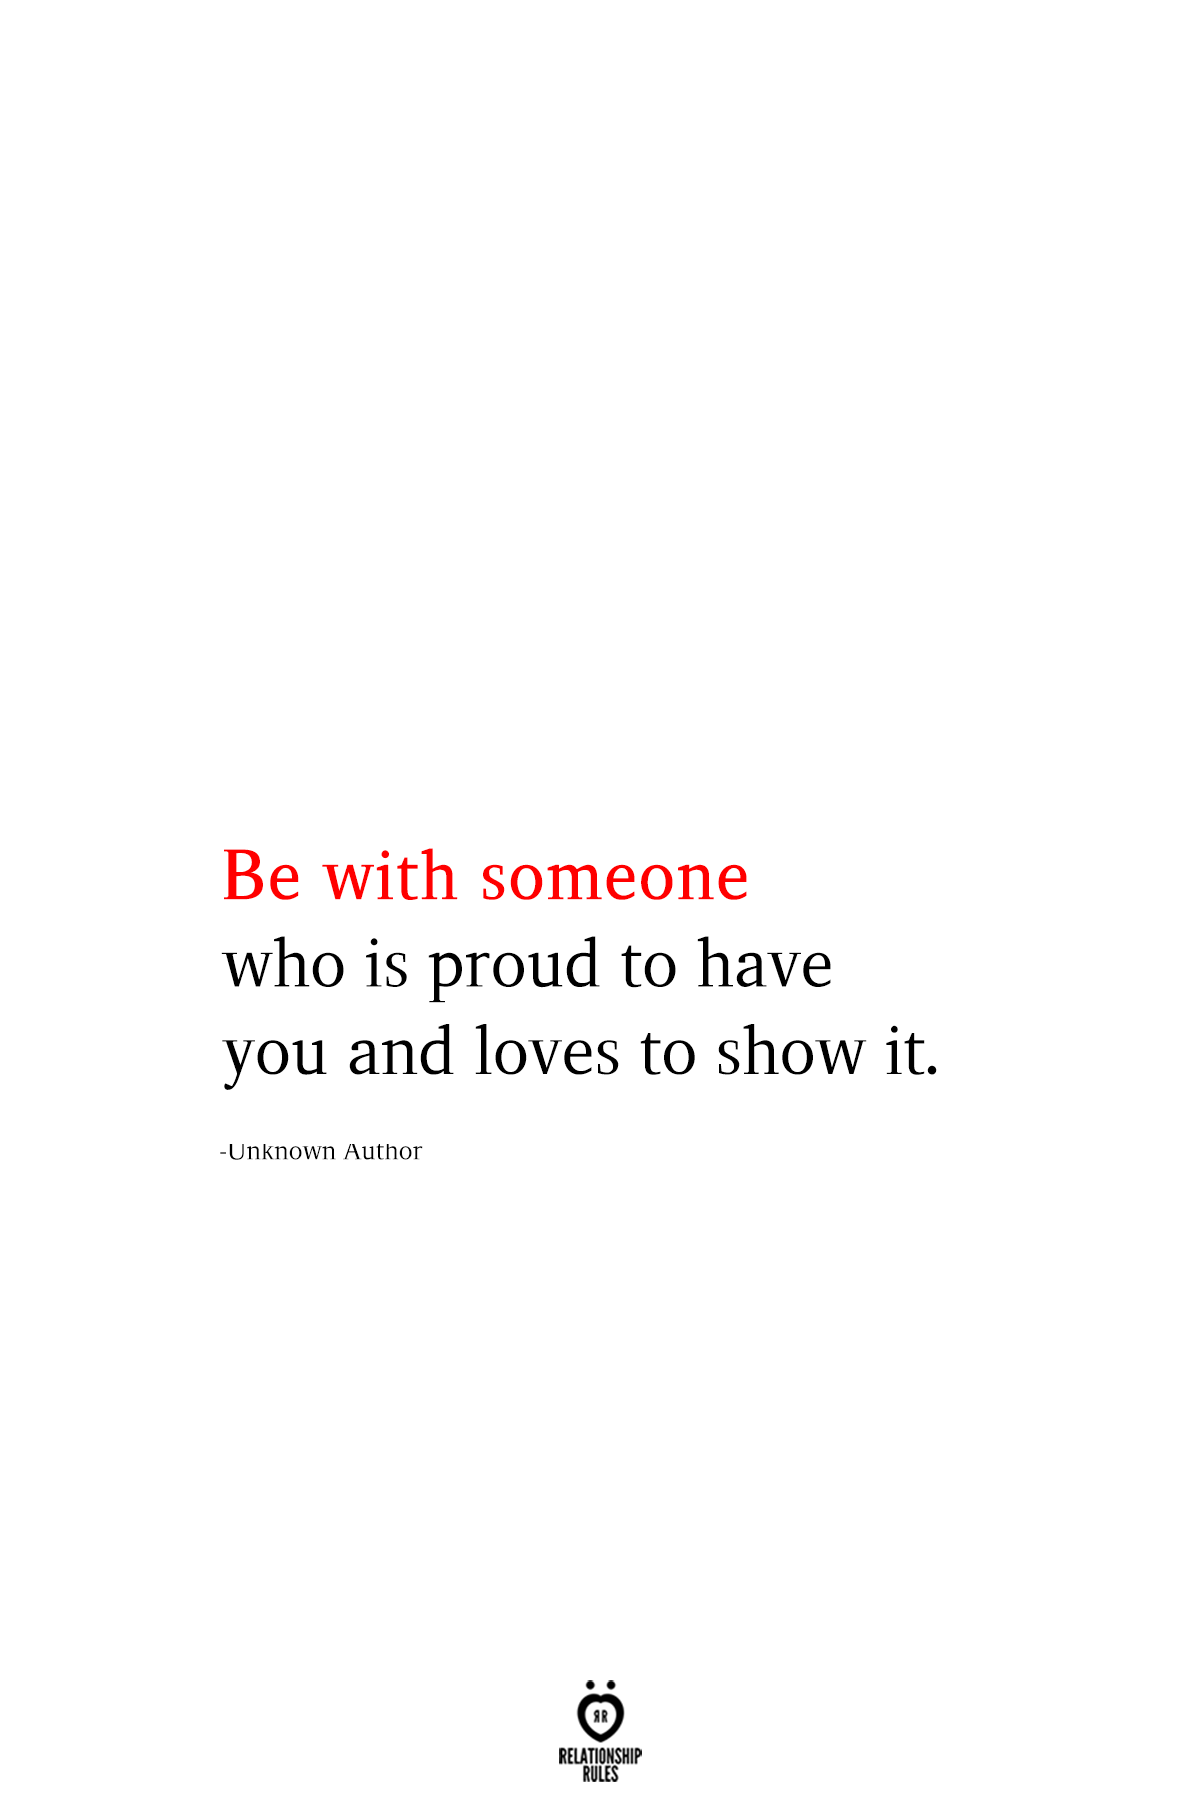 Be With Someone Who Is Proud To Have You And Loves To Show It Wise Quotes Boyfriend Quotes Cool Words